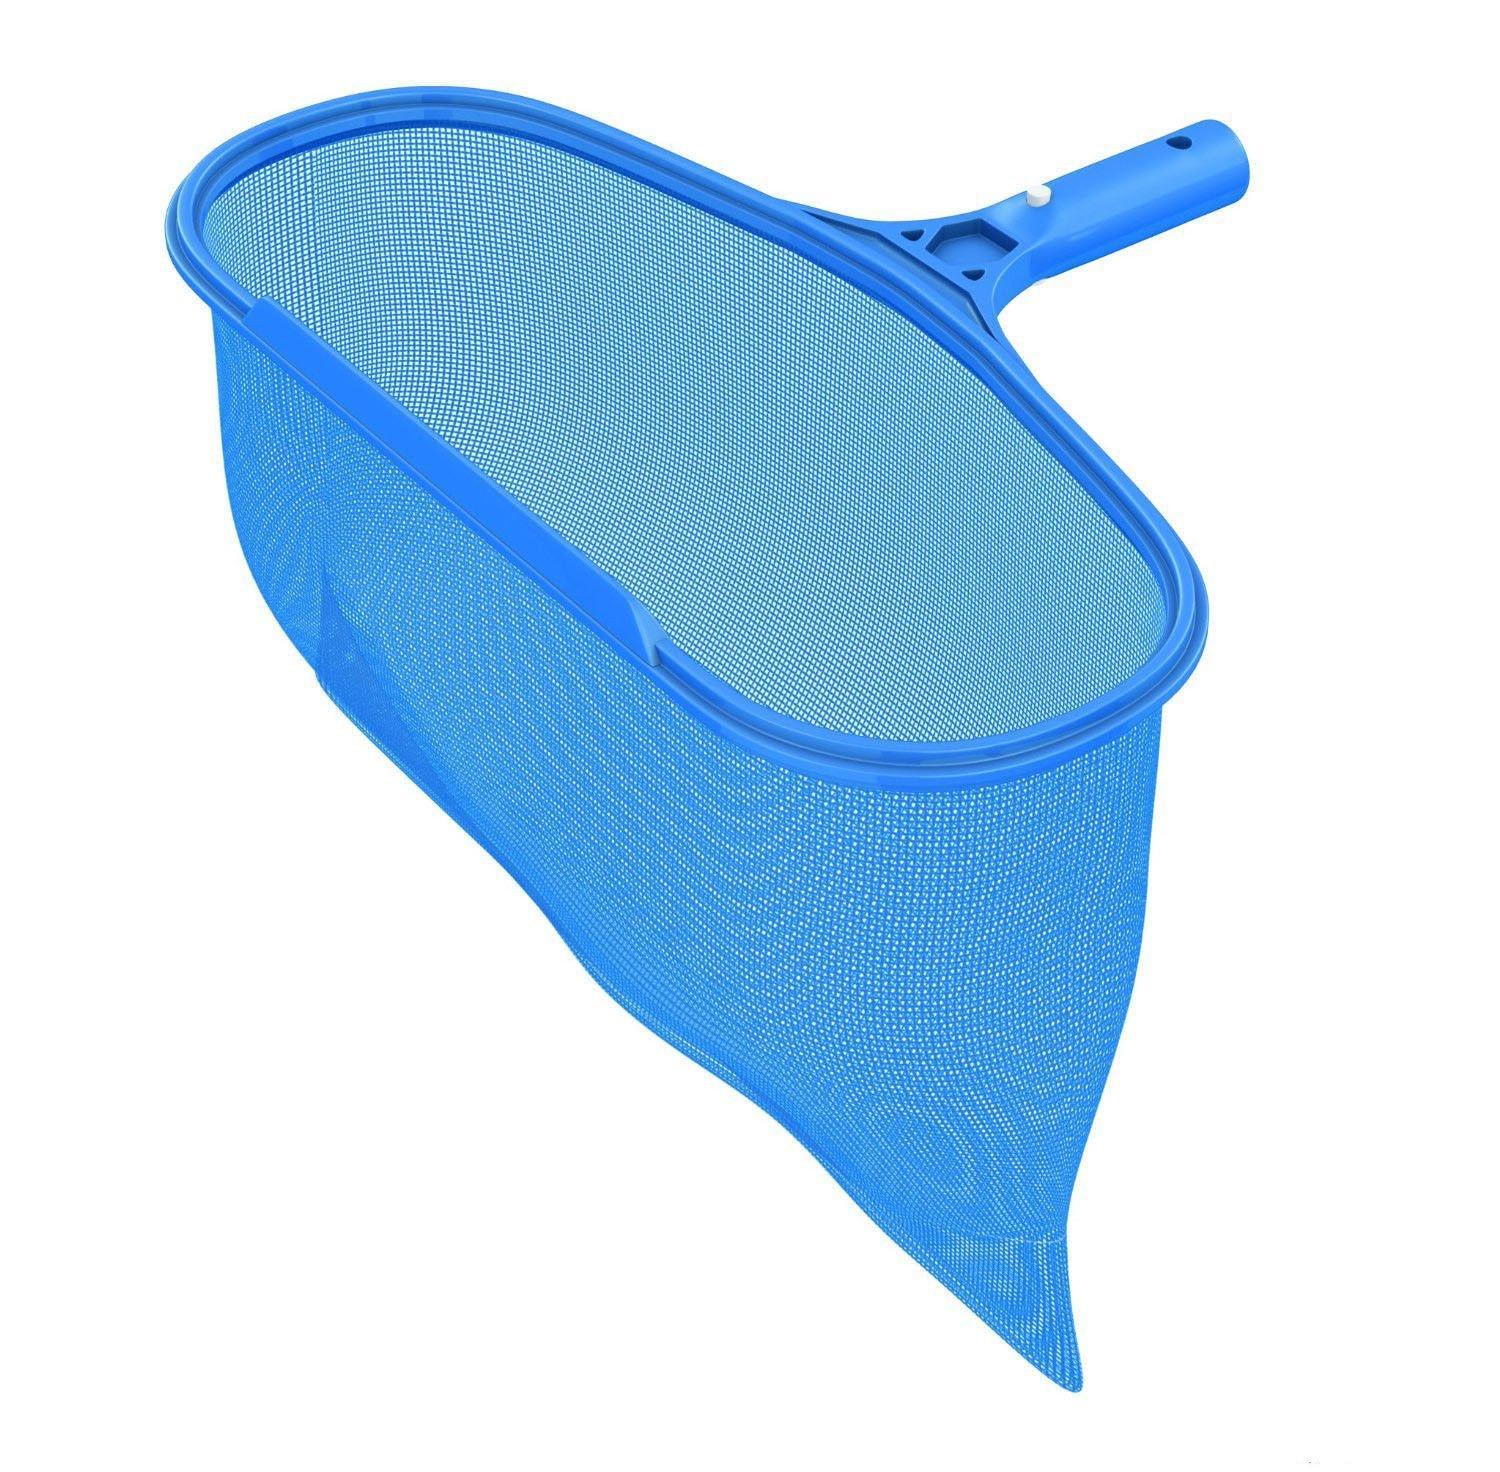 Ultra Durable Pool Spa Leaf Skimmer Net Rake w/ Deep Pocket Net